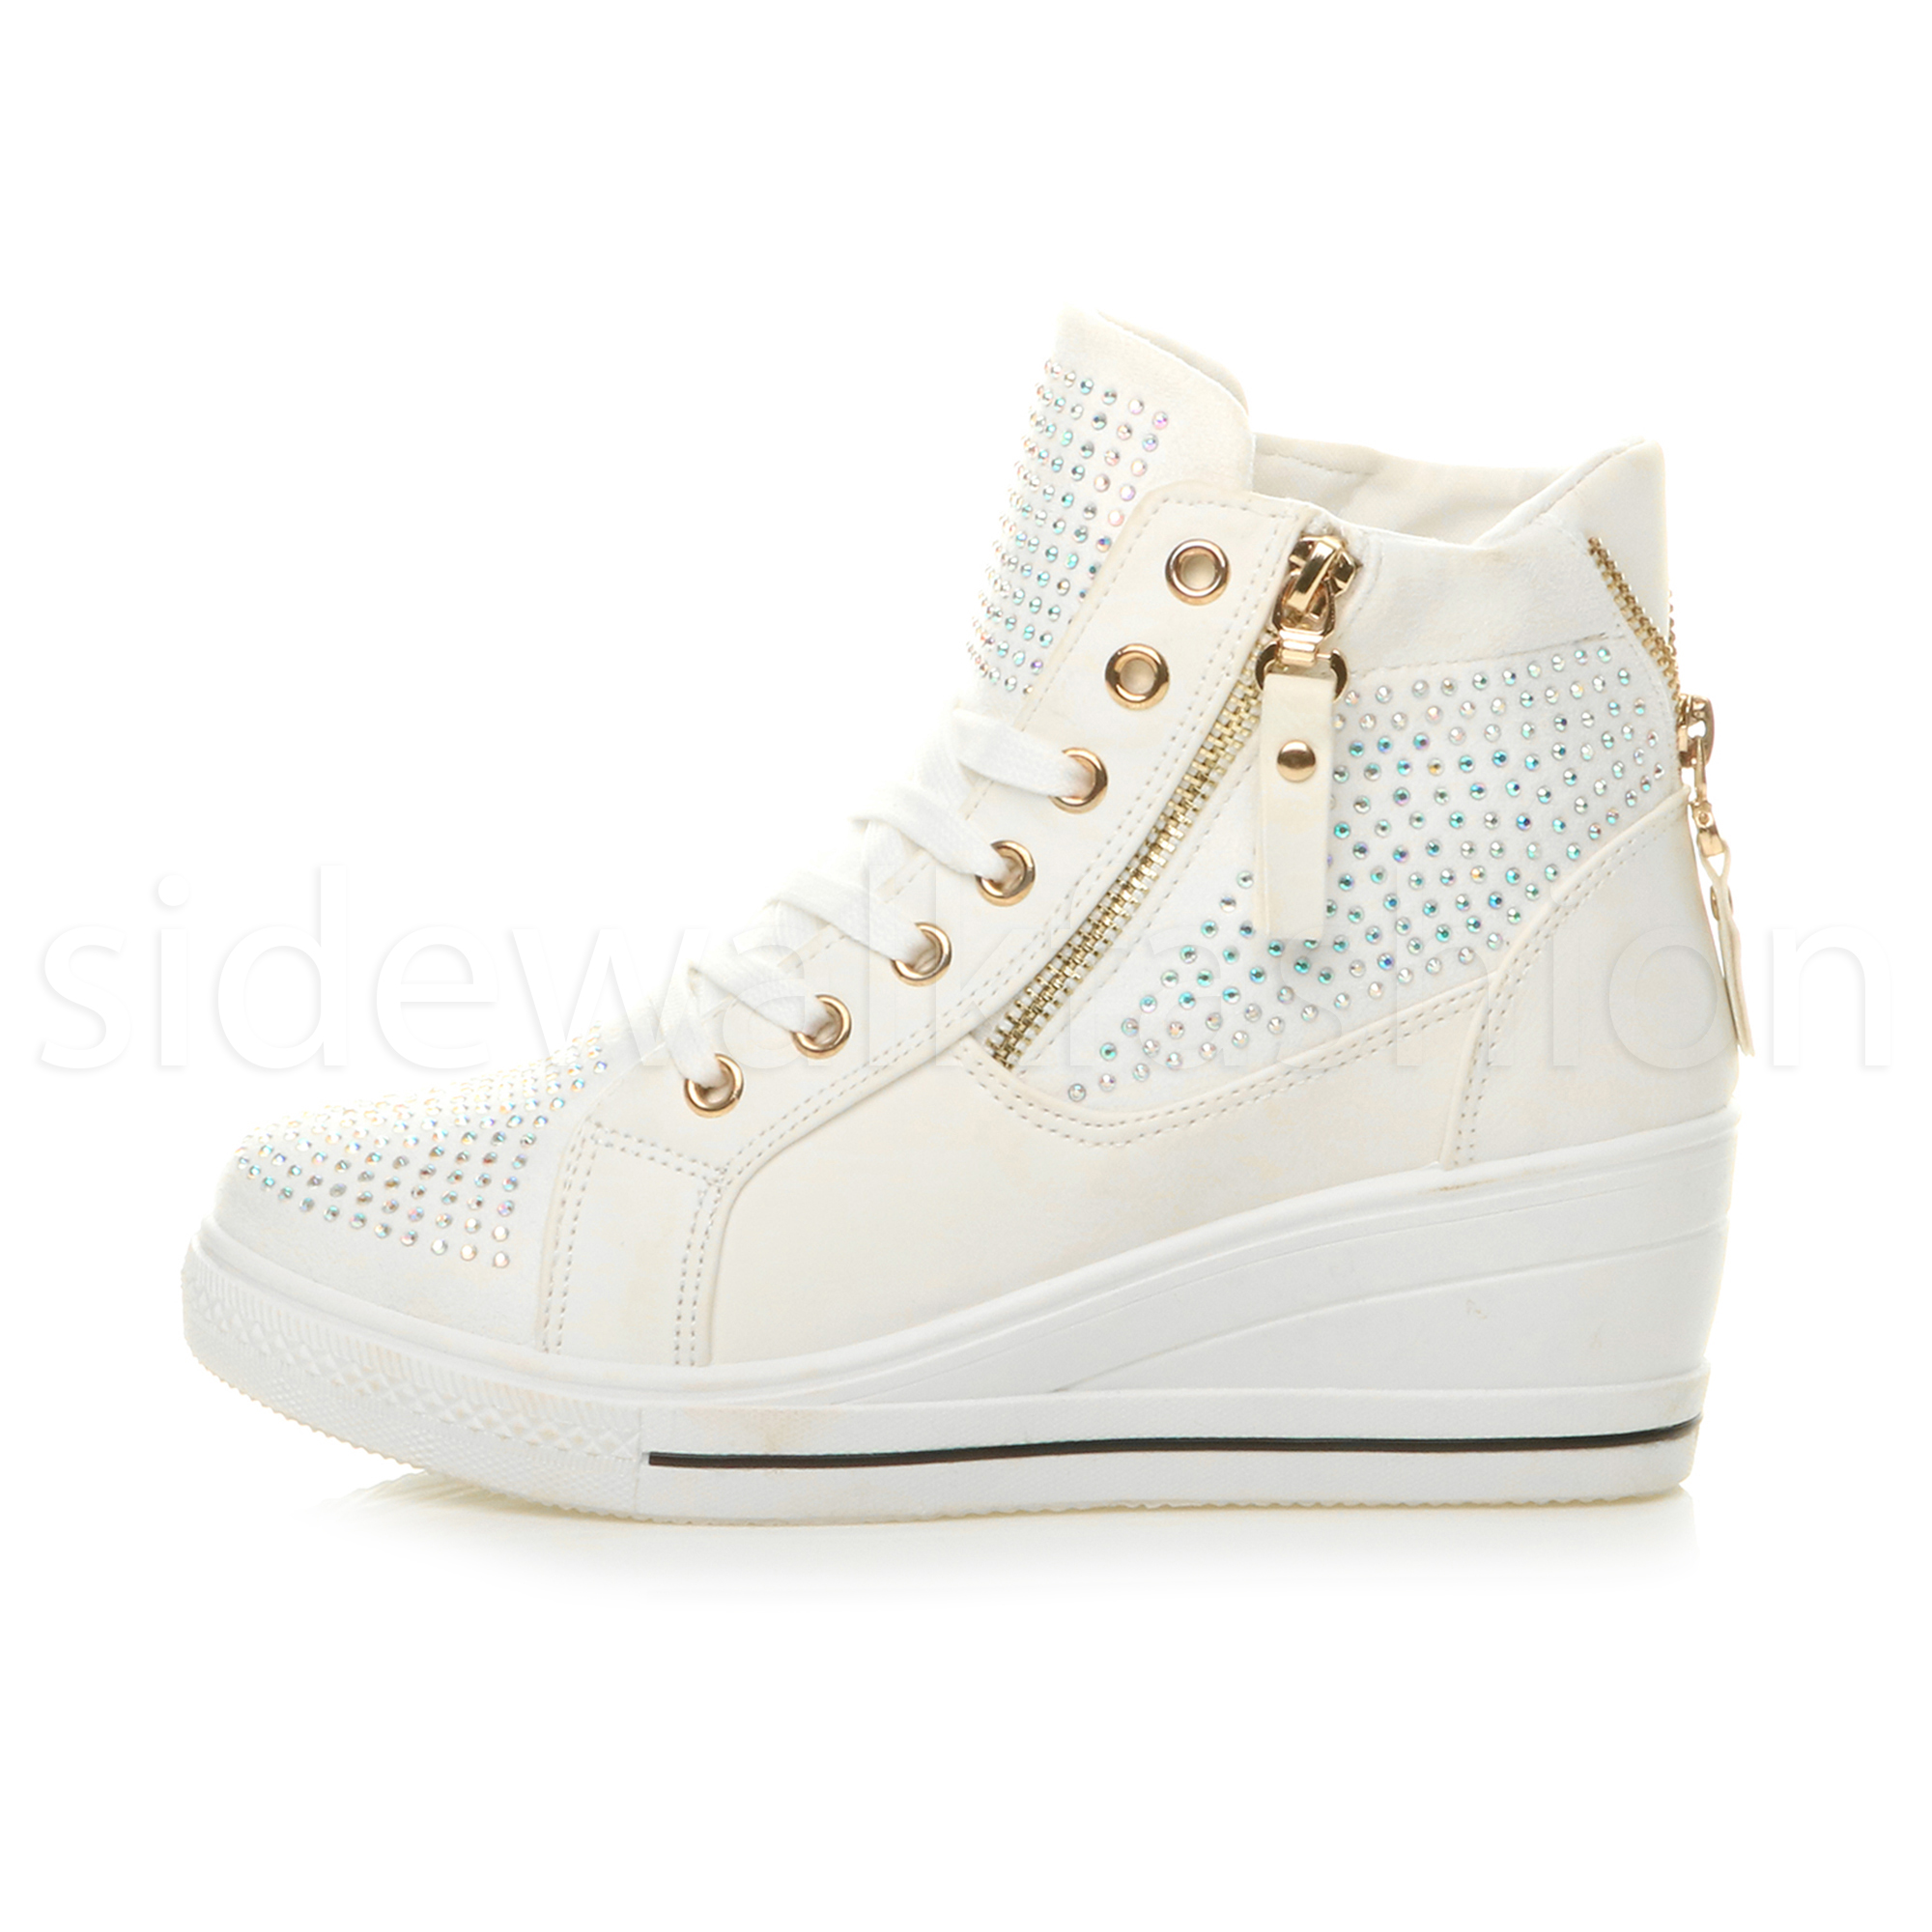 Femme Talon Moyen Compensᄄᆭ Baskets compensᄄᆭes sneakers High Top Hi Bottines-afficher le titre d'origine